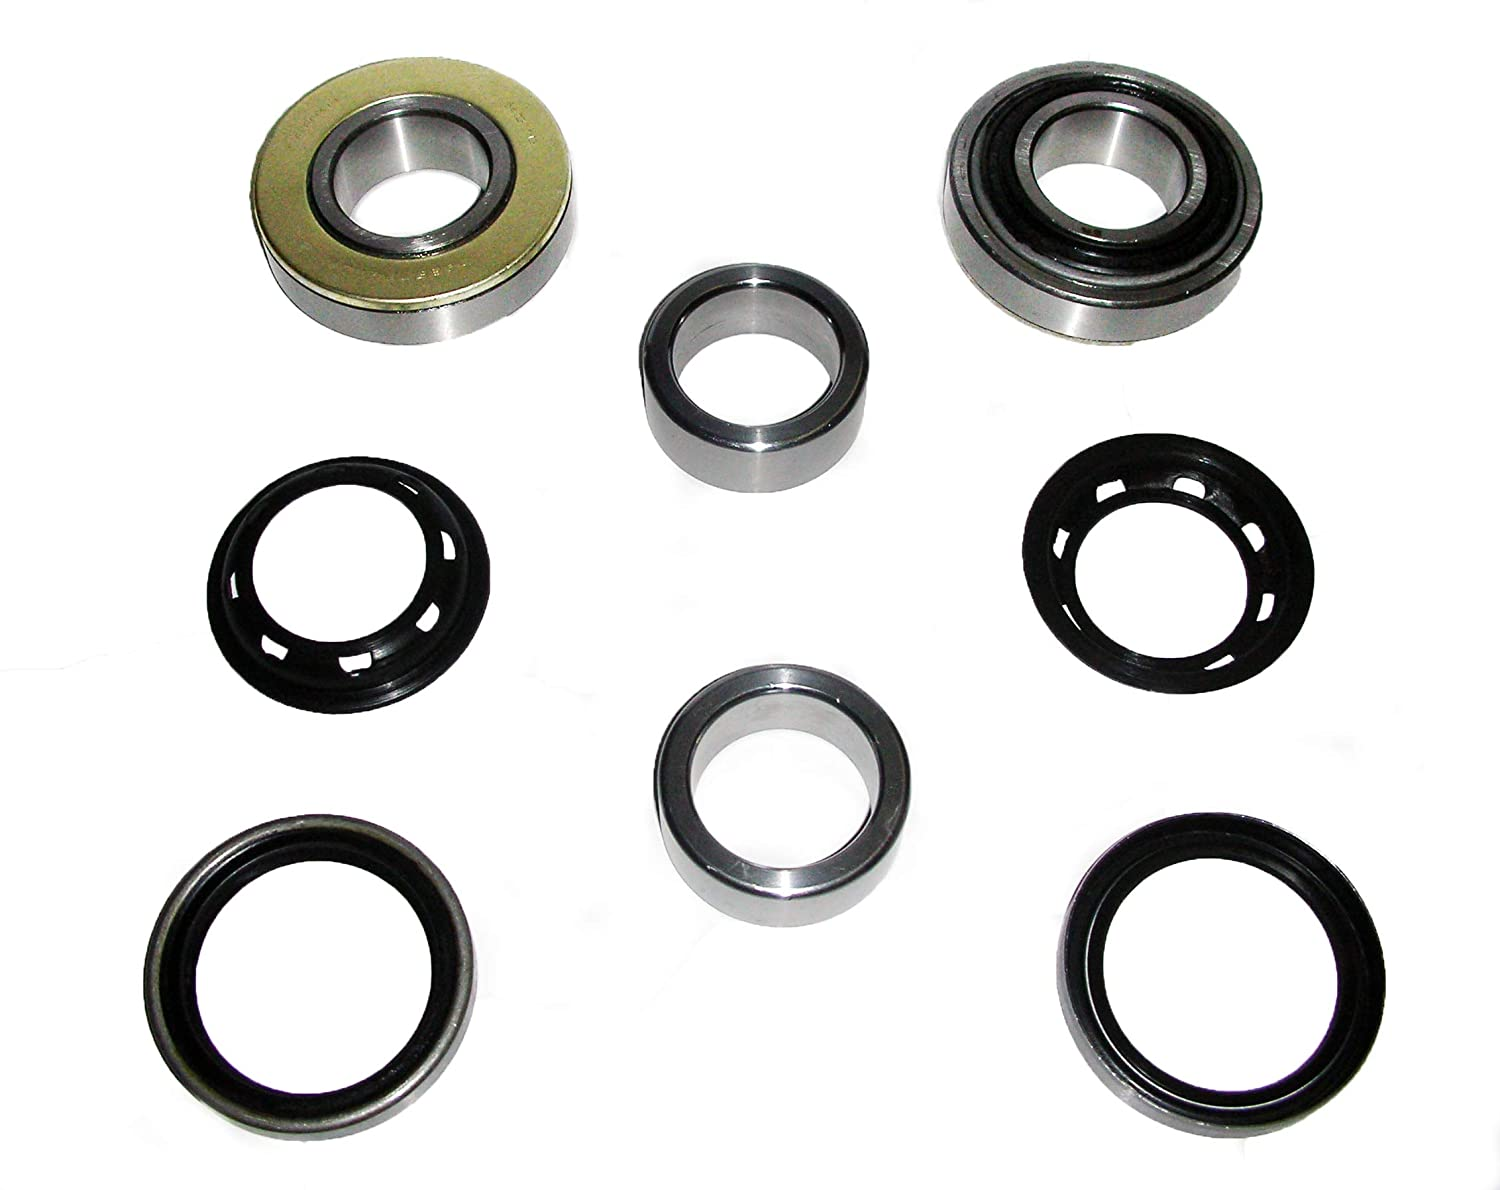 SUZUKI KOYO JAPAN SJ410 SJ413 HEAVY DUTY REAR AXLE HUB WHEEL BEARING OIL SEAL RETAINER REBUILD REPAIR RECO KIT SAMURAI JIMNY SIERRA CARIBIAN STOCKMAN DROVER 09269-35009 09283-48007 43588-7300 43485 ROCKSTA9